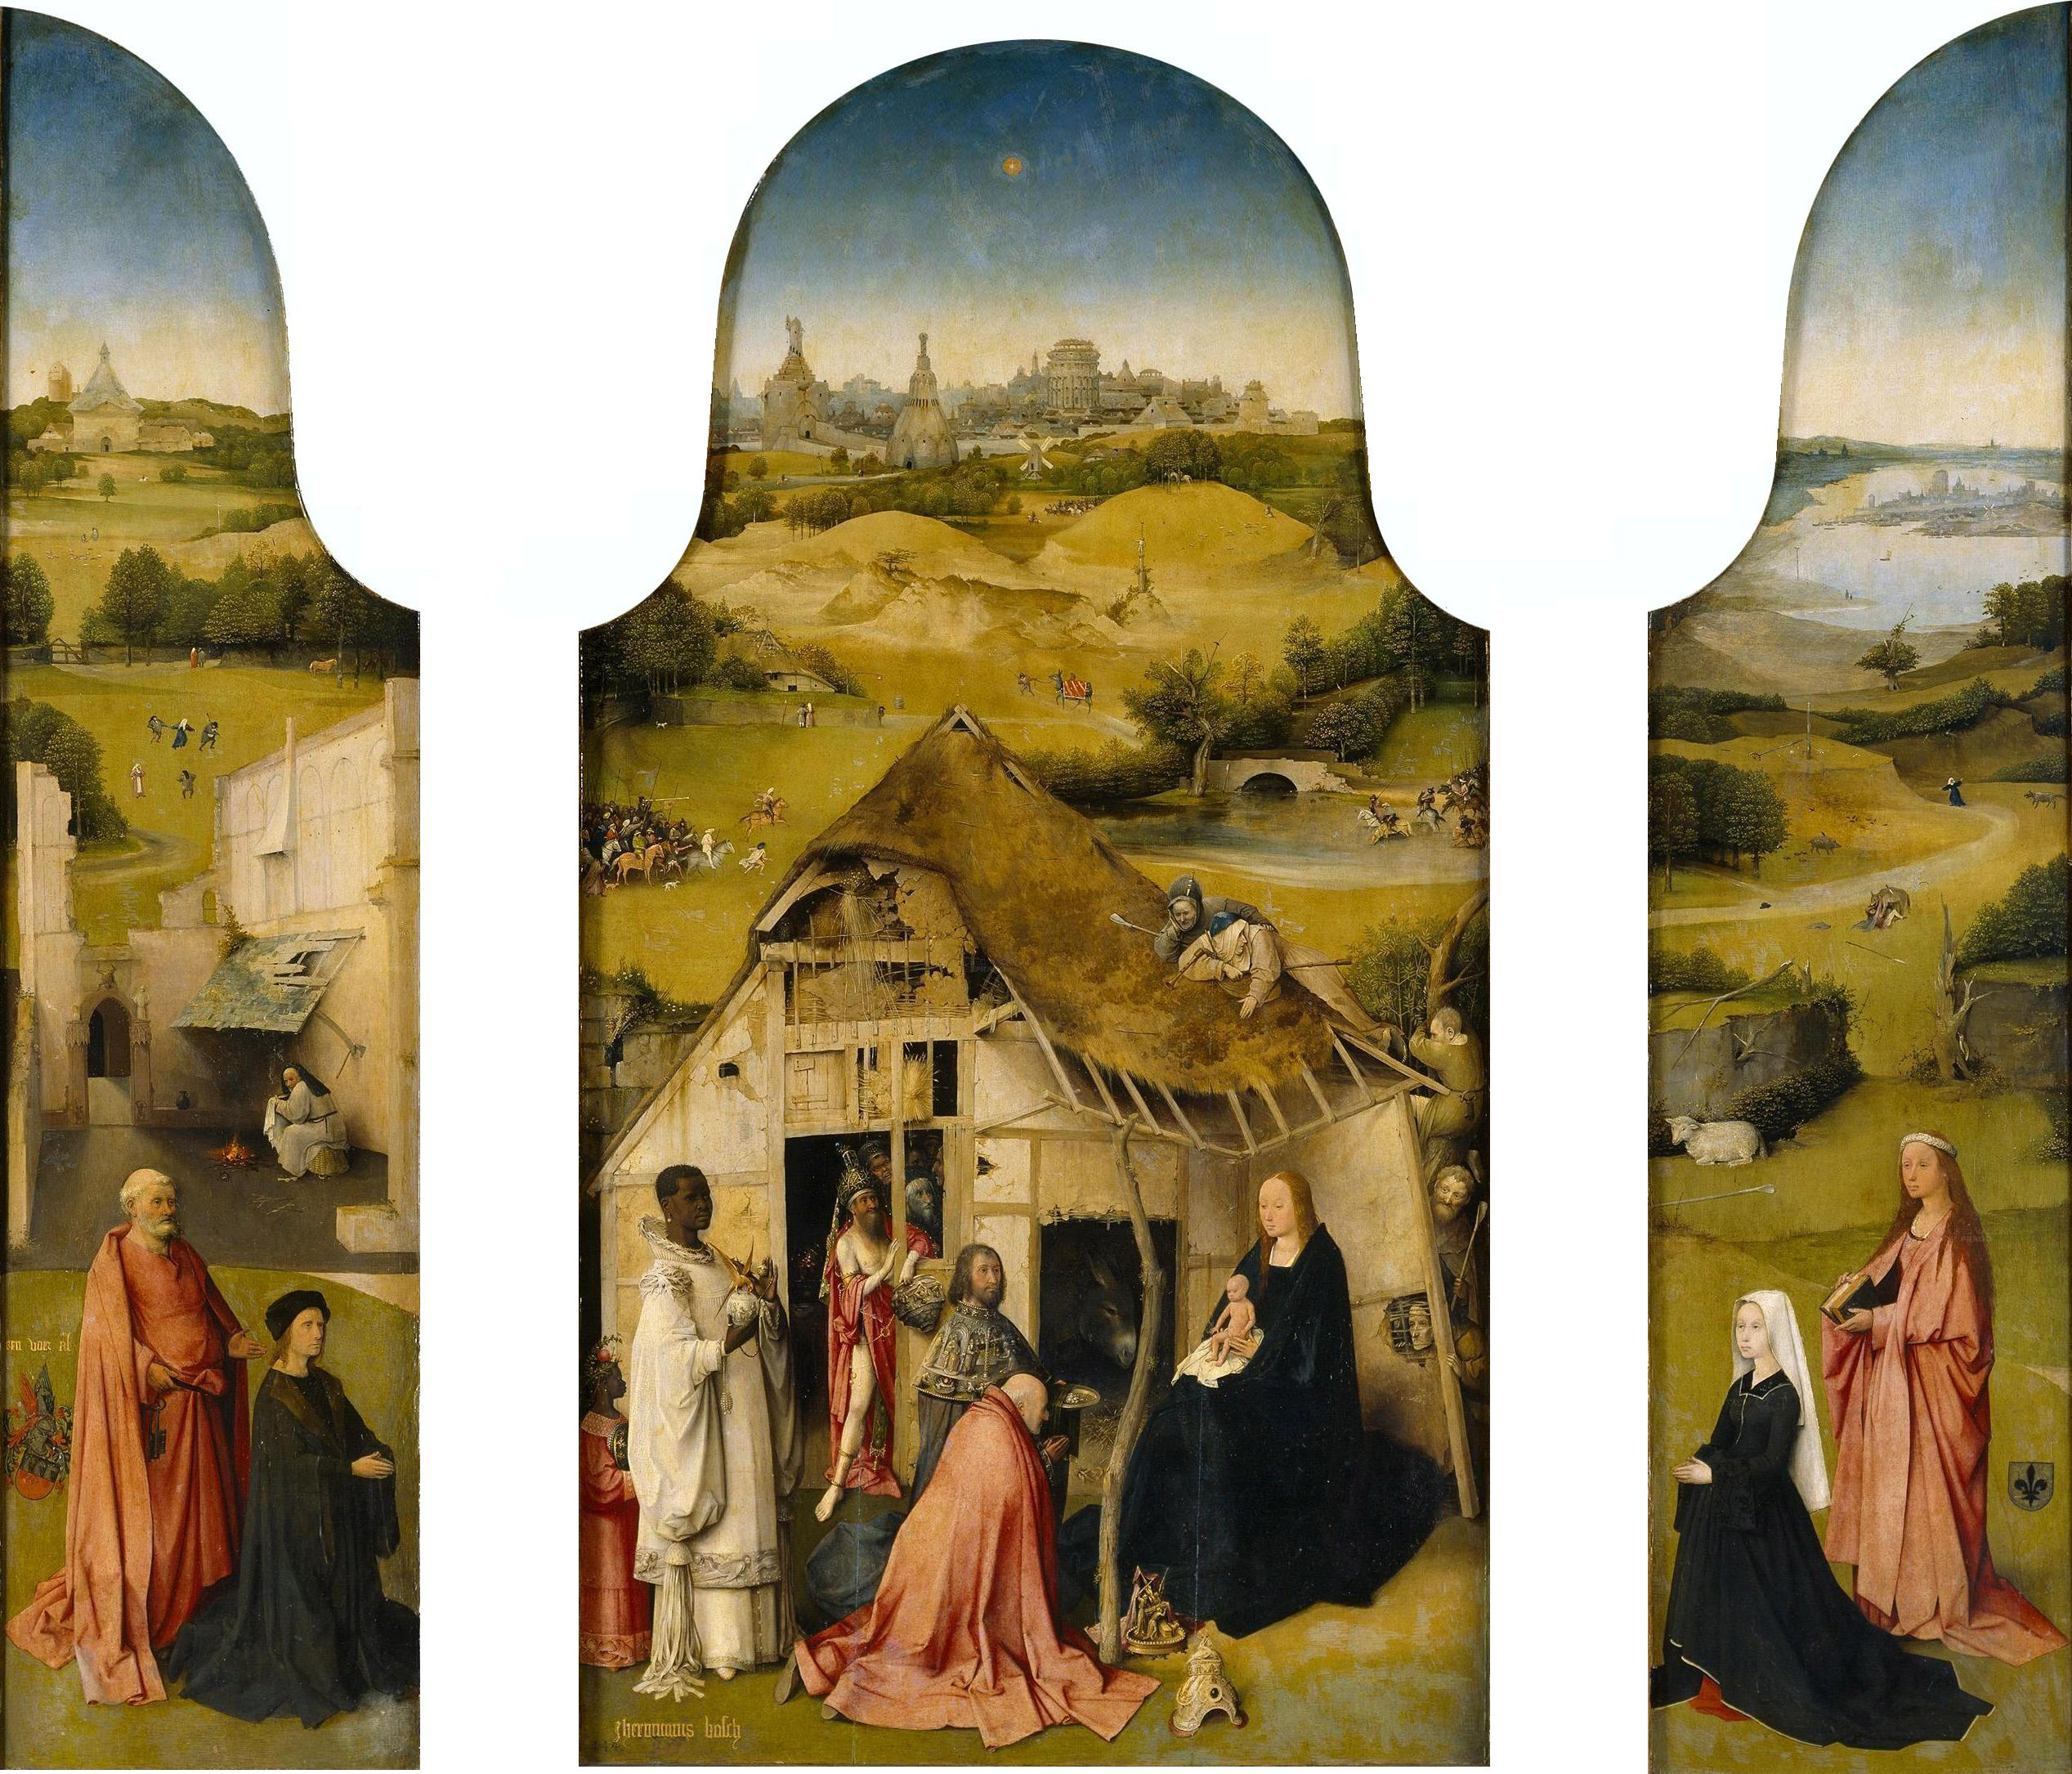 https://i0.wp.com/upload.wikimedia.org/wikipedia/commons/7/7a/J._Bosch_Adoration_of_the_Magi_Triptych.jpg